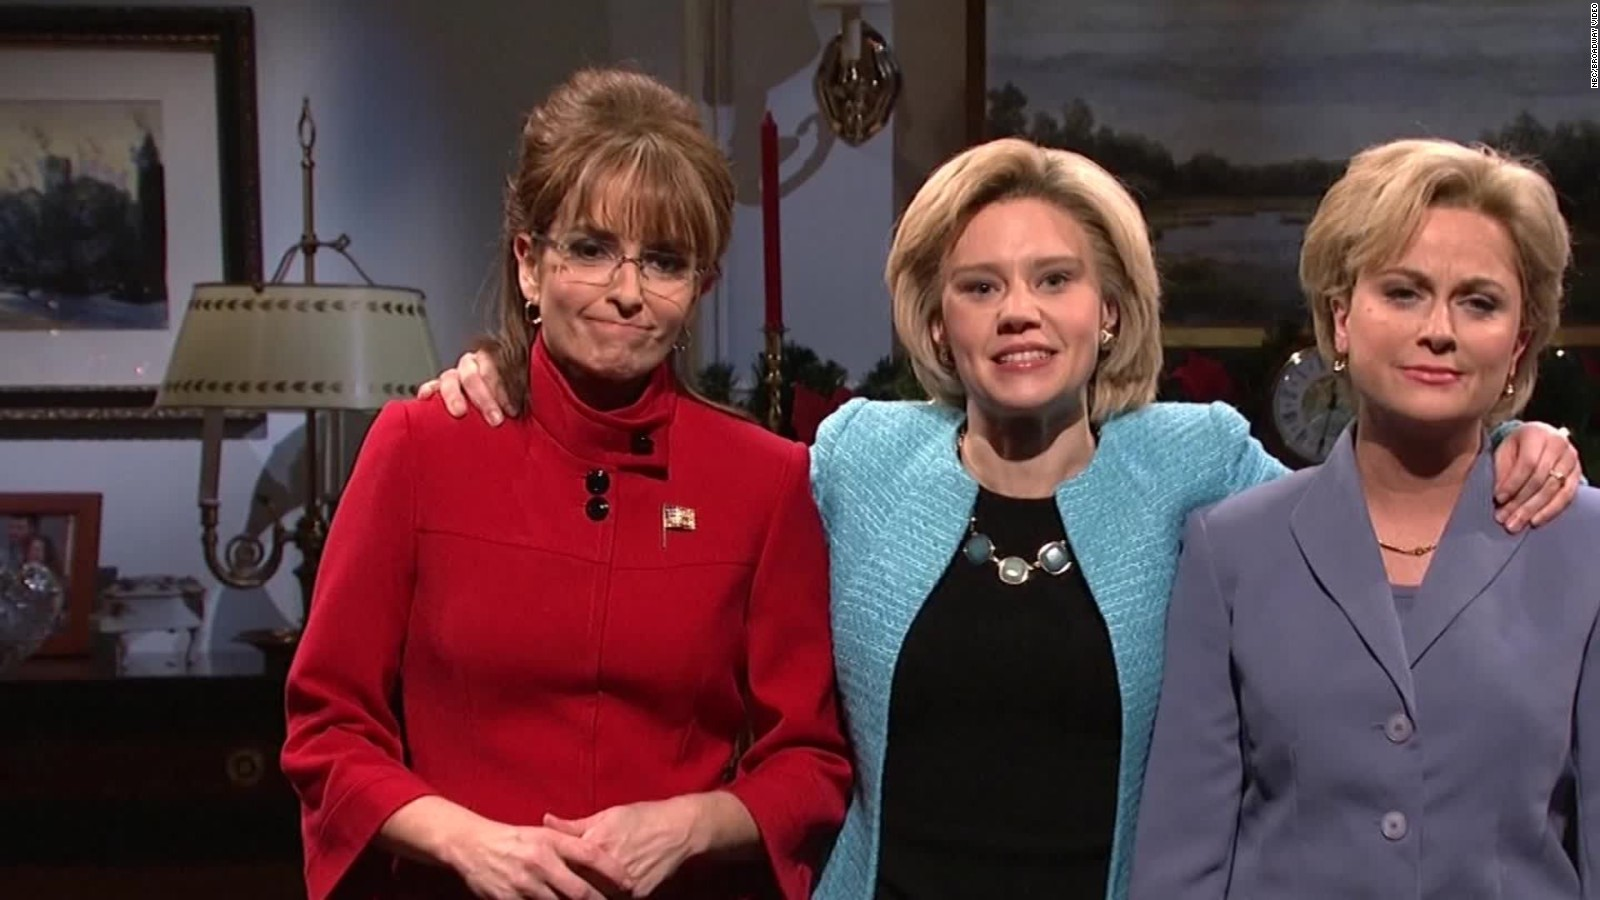 Hillary Clinton Christmas.Snl Hillary Clinton Gets Visitors From The Past